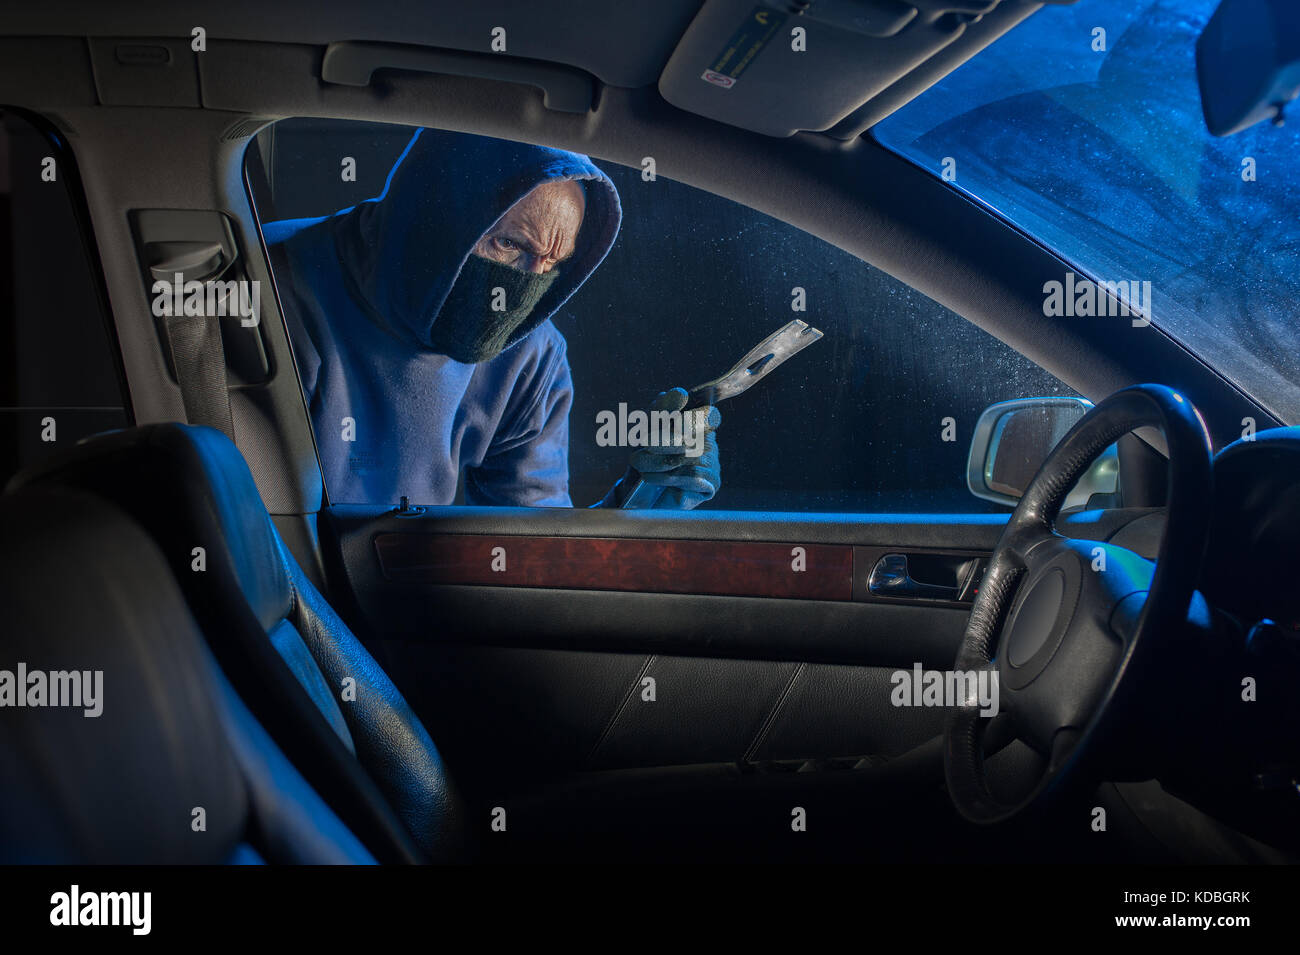 Car thief breaking into a car at night - Stock Image